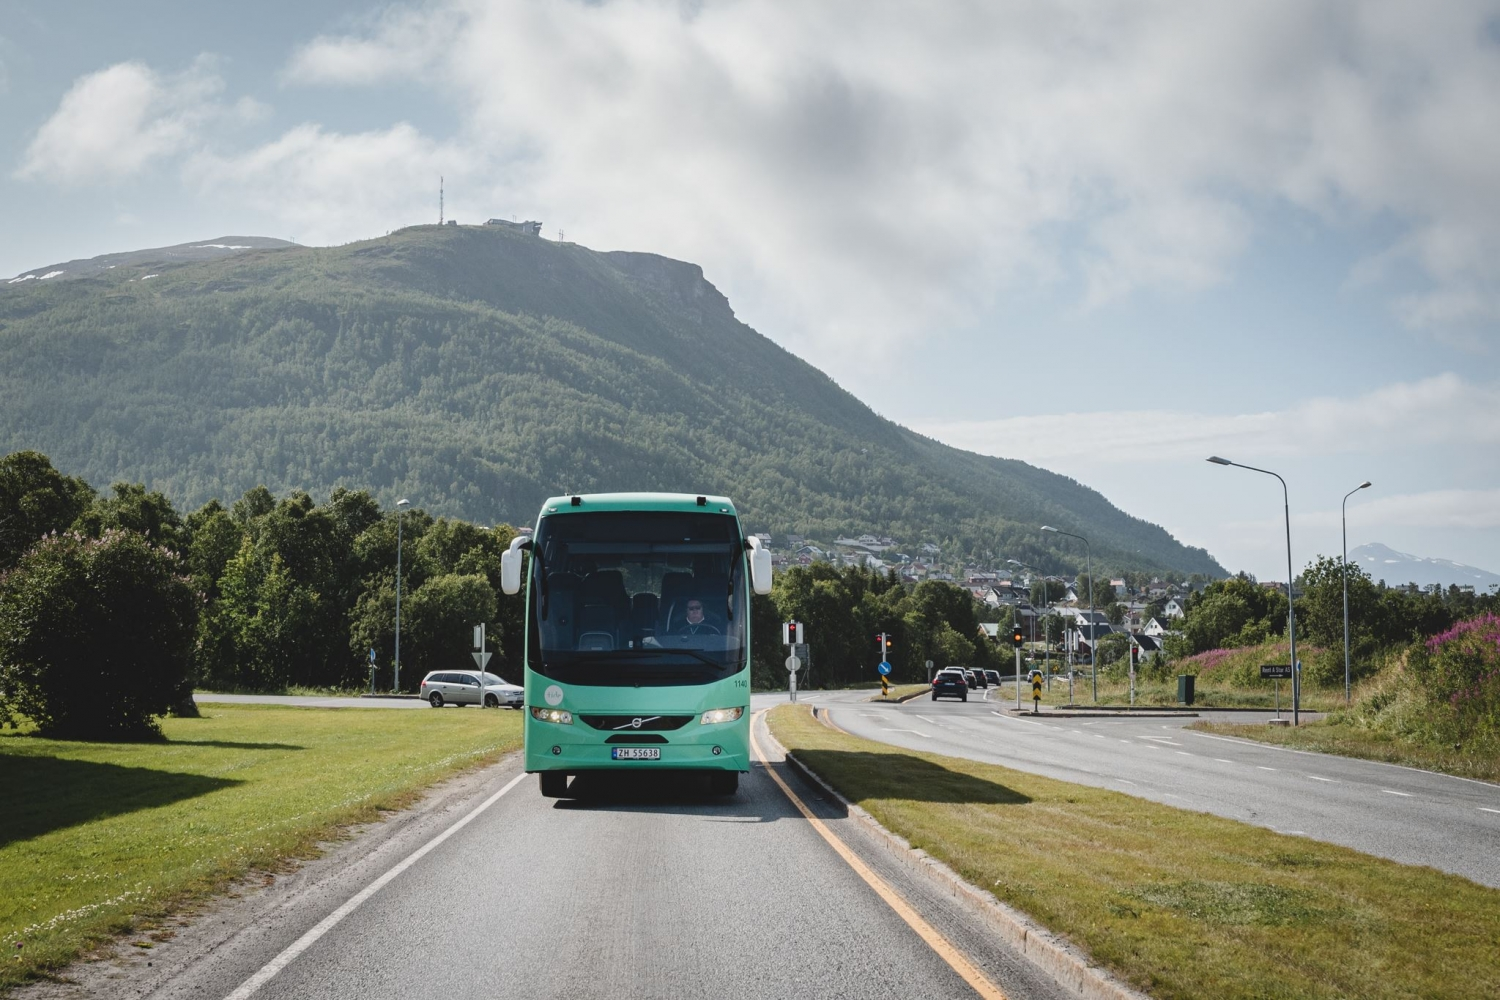 Bus on the road, mountain in the background